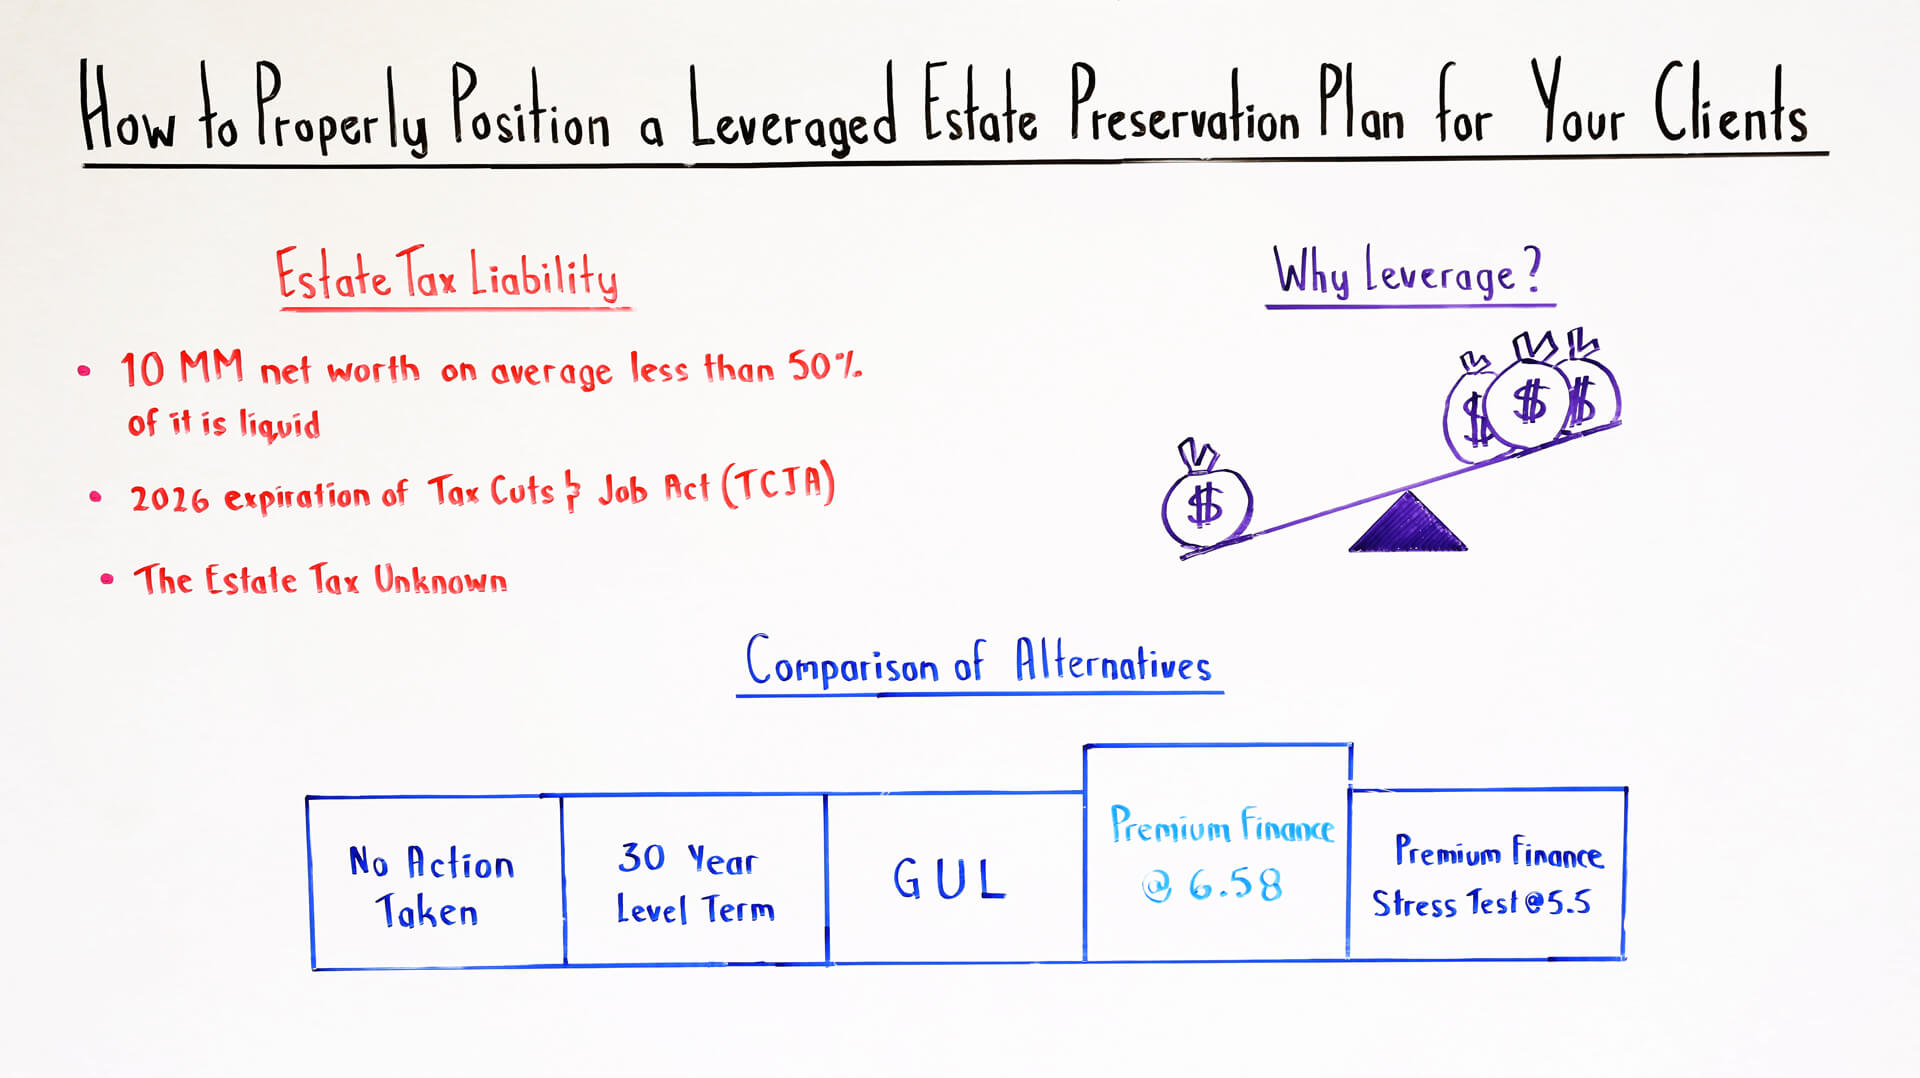 How to Properly Position a Leveraged Estate Preservation Plan for Your Clients